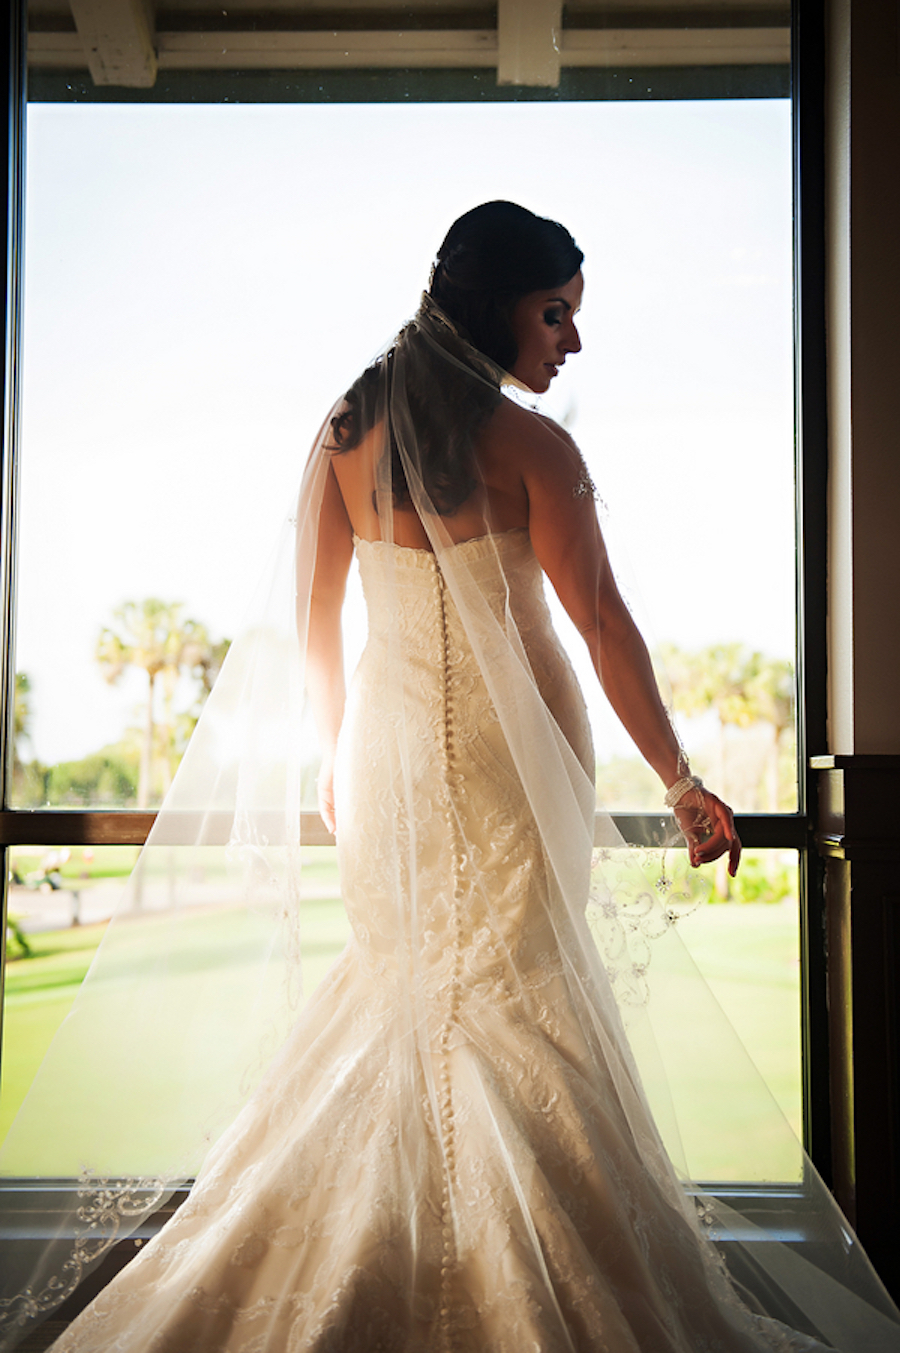 Bridal Wedding Portrait with Long Chapel Veil | Countryside Country Club